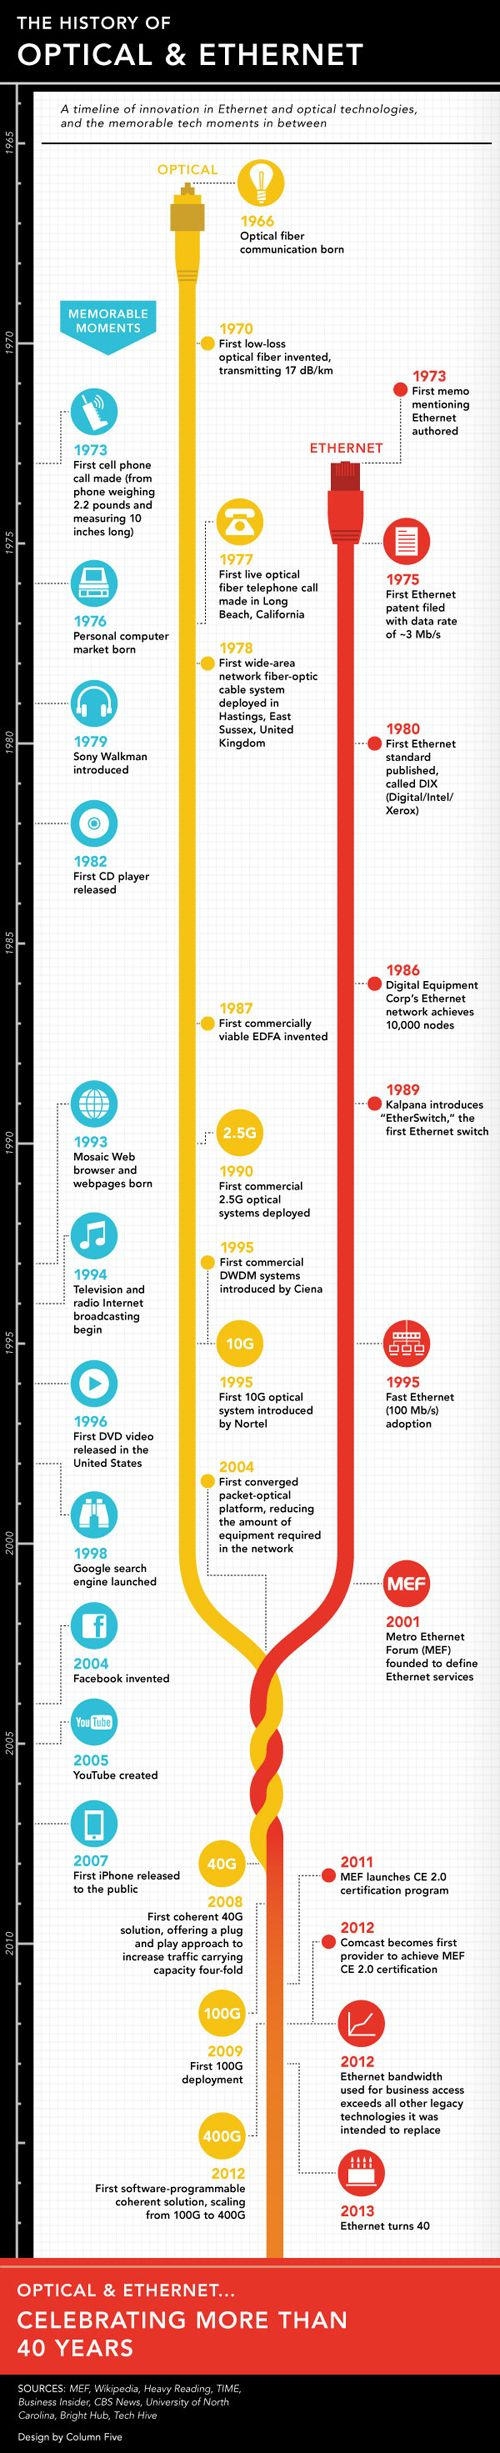 The history of optical and ethernet